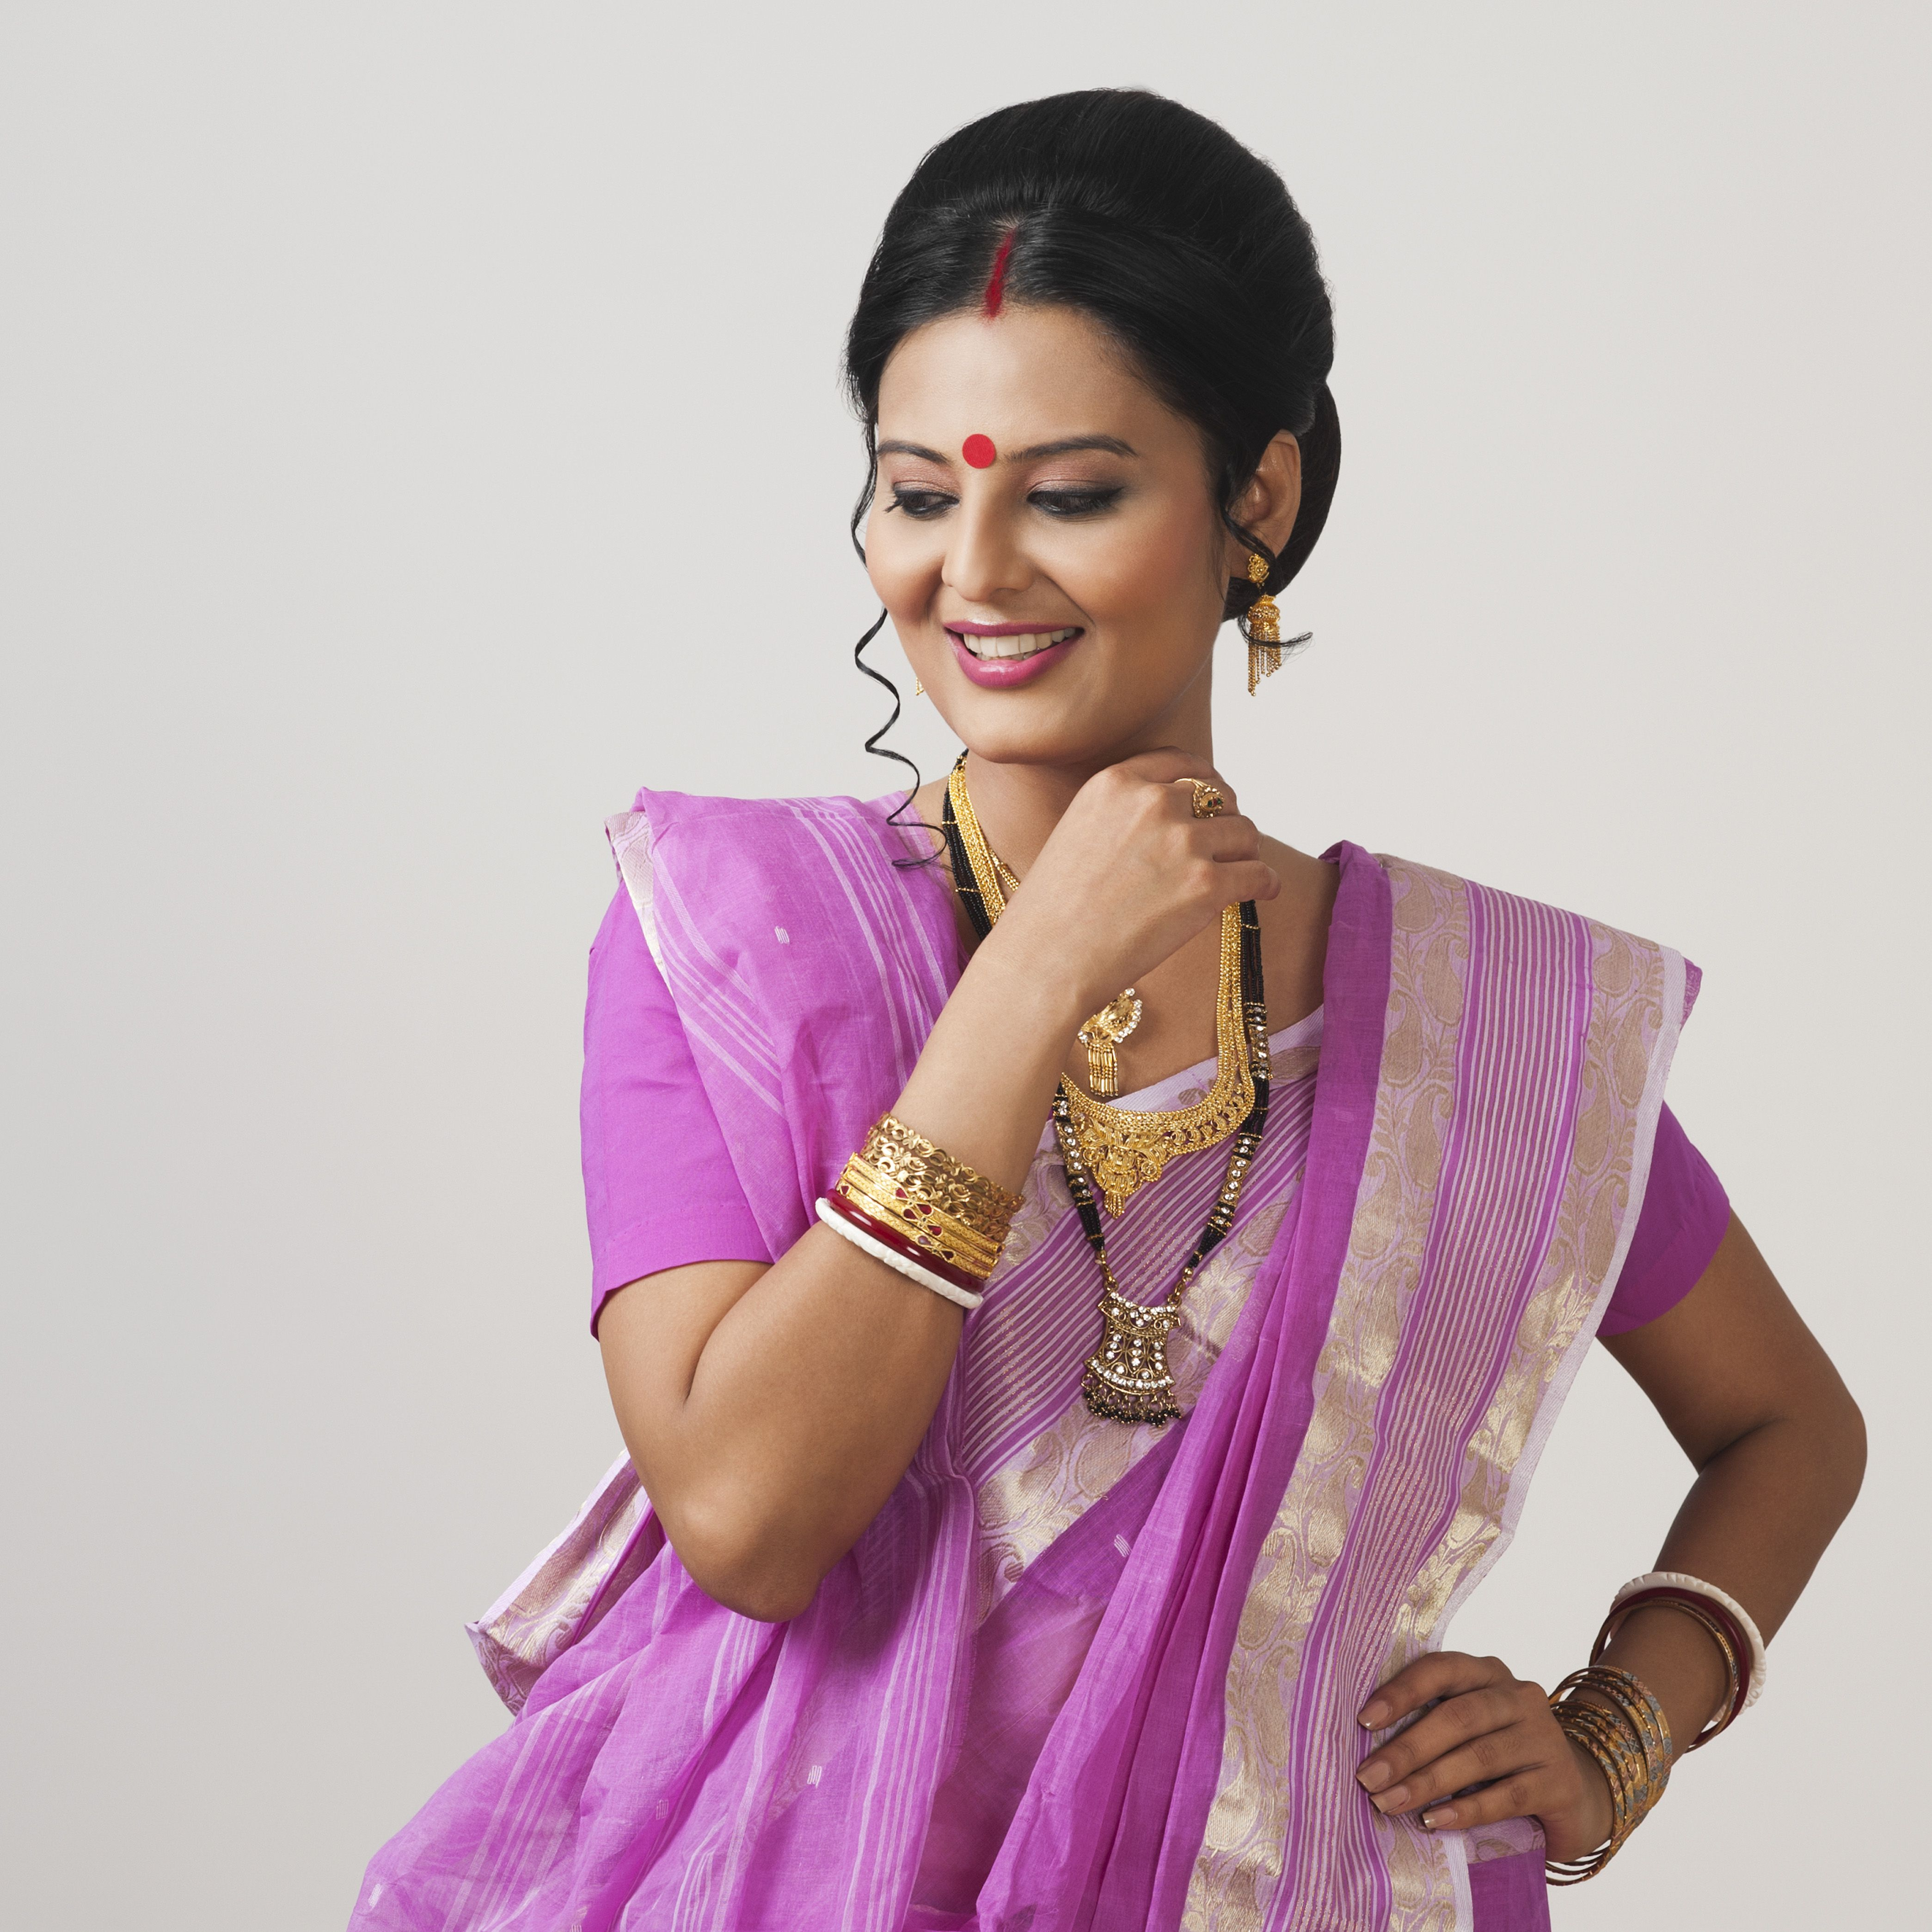 Mangalsutra Necklace: Hindu Symbol of Love and Marriage